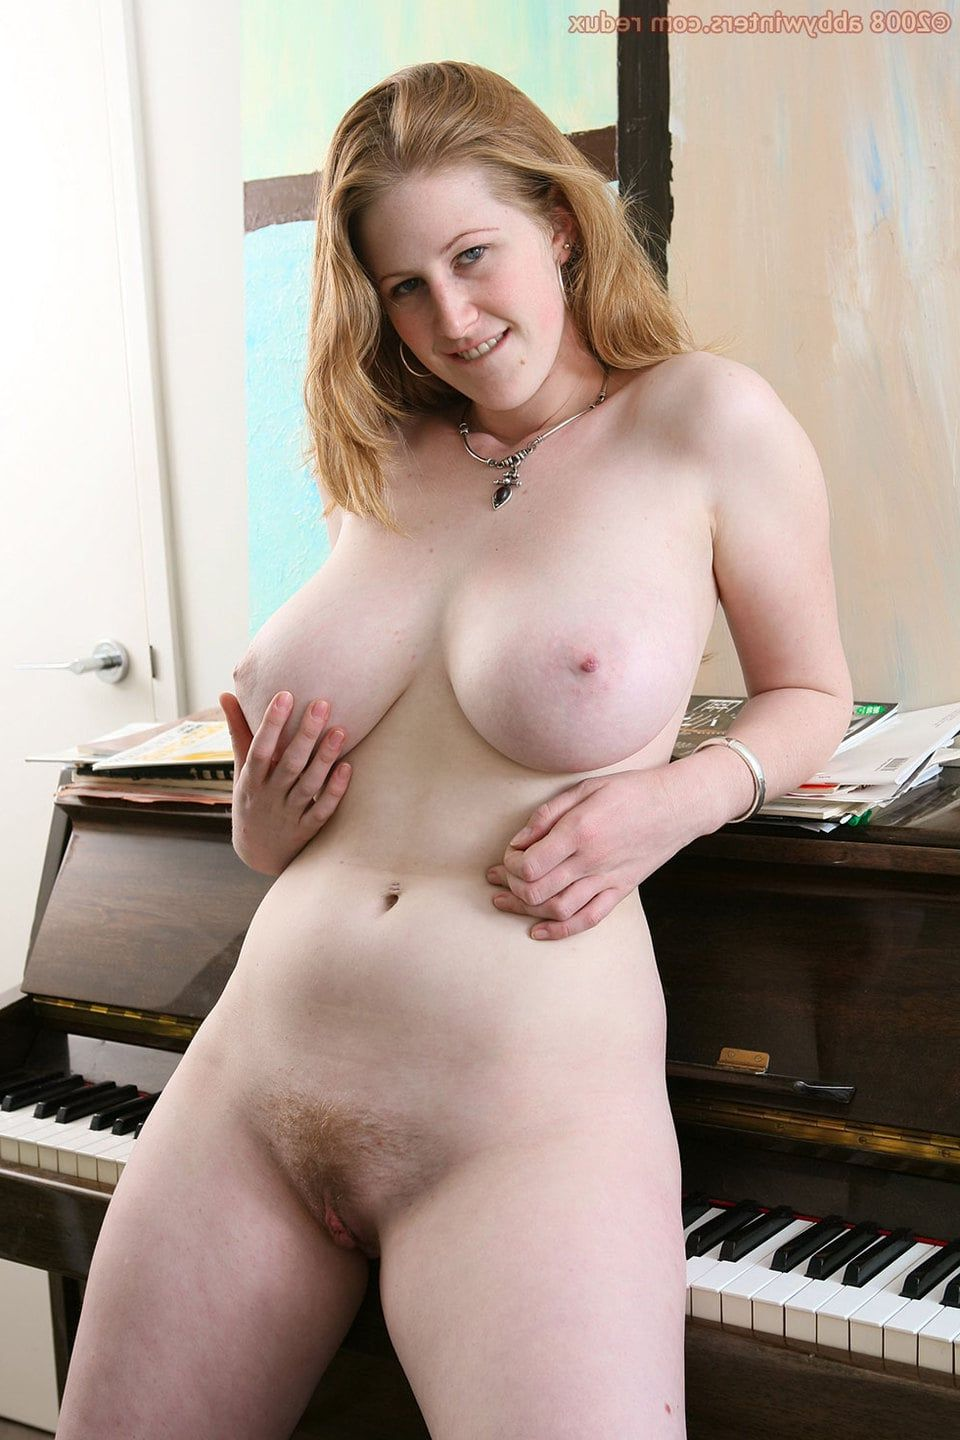 amazing emo girl nude